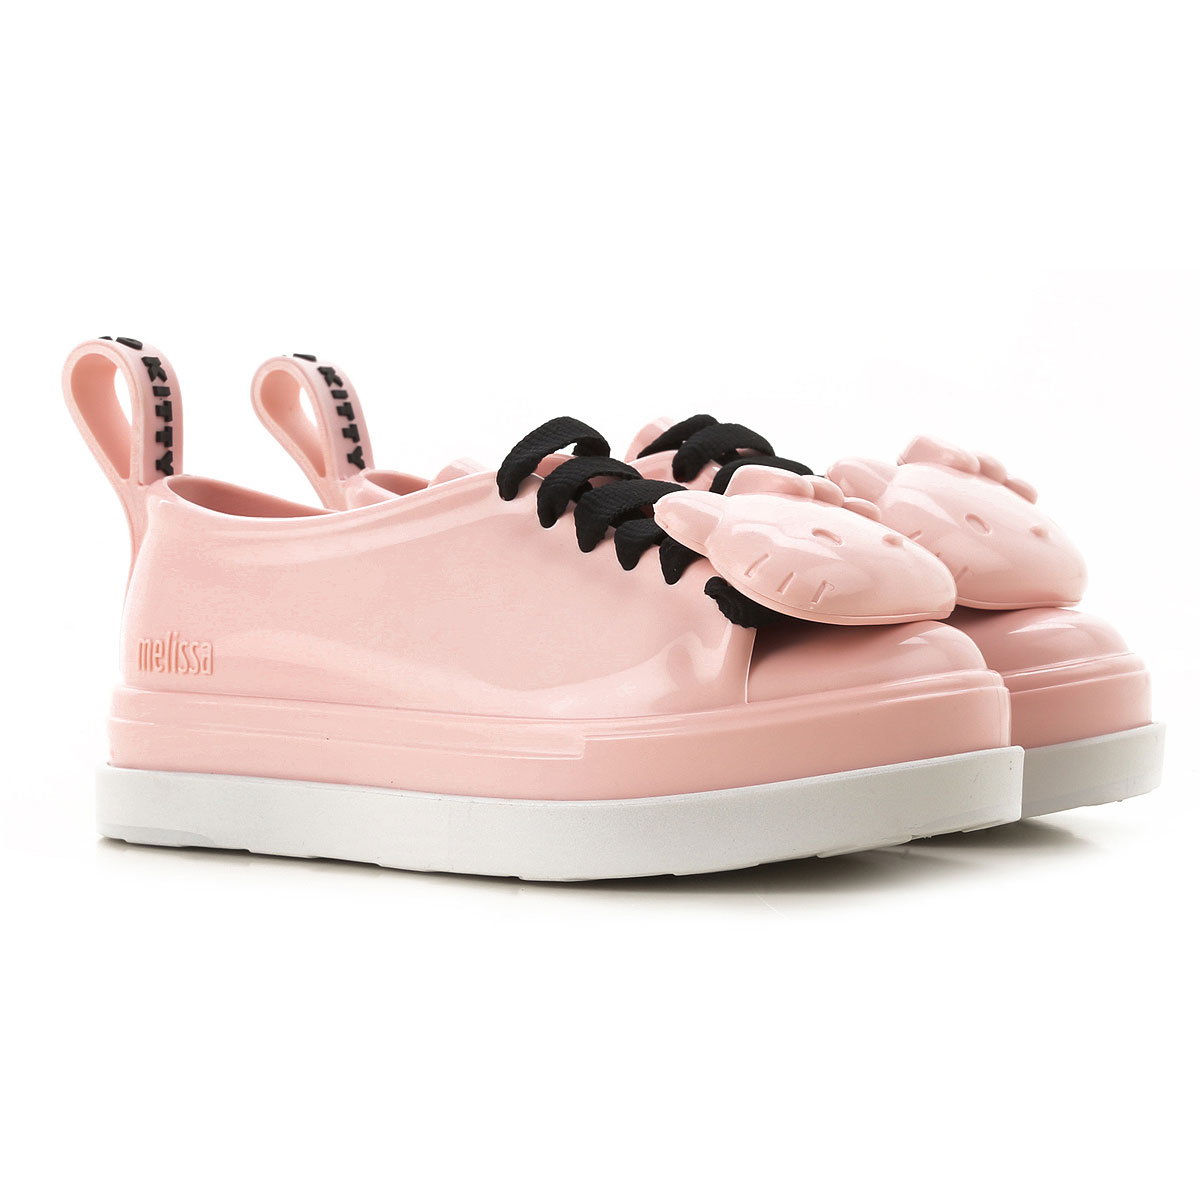 Melissa Kids Shoes for Girls On Sale, Pink, PVC, 2019, EU 28/29 - 17.5 CM EU 30 - 18.5 CM EU 31 - 19 CM EU 32 - 20 CM EU 33 - 20.5 CM EU 34/35 - 21.5